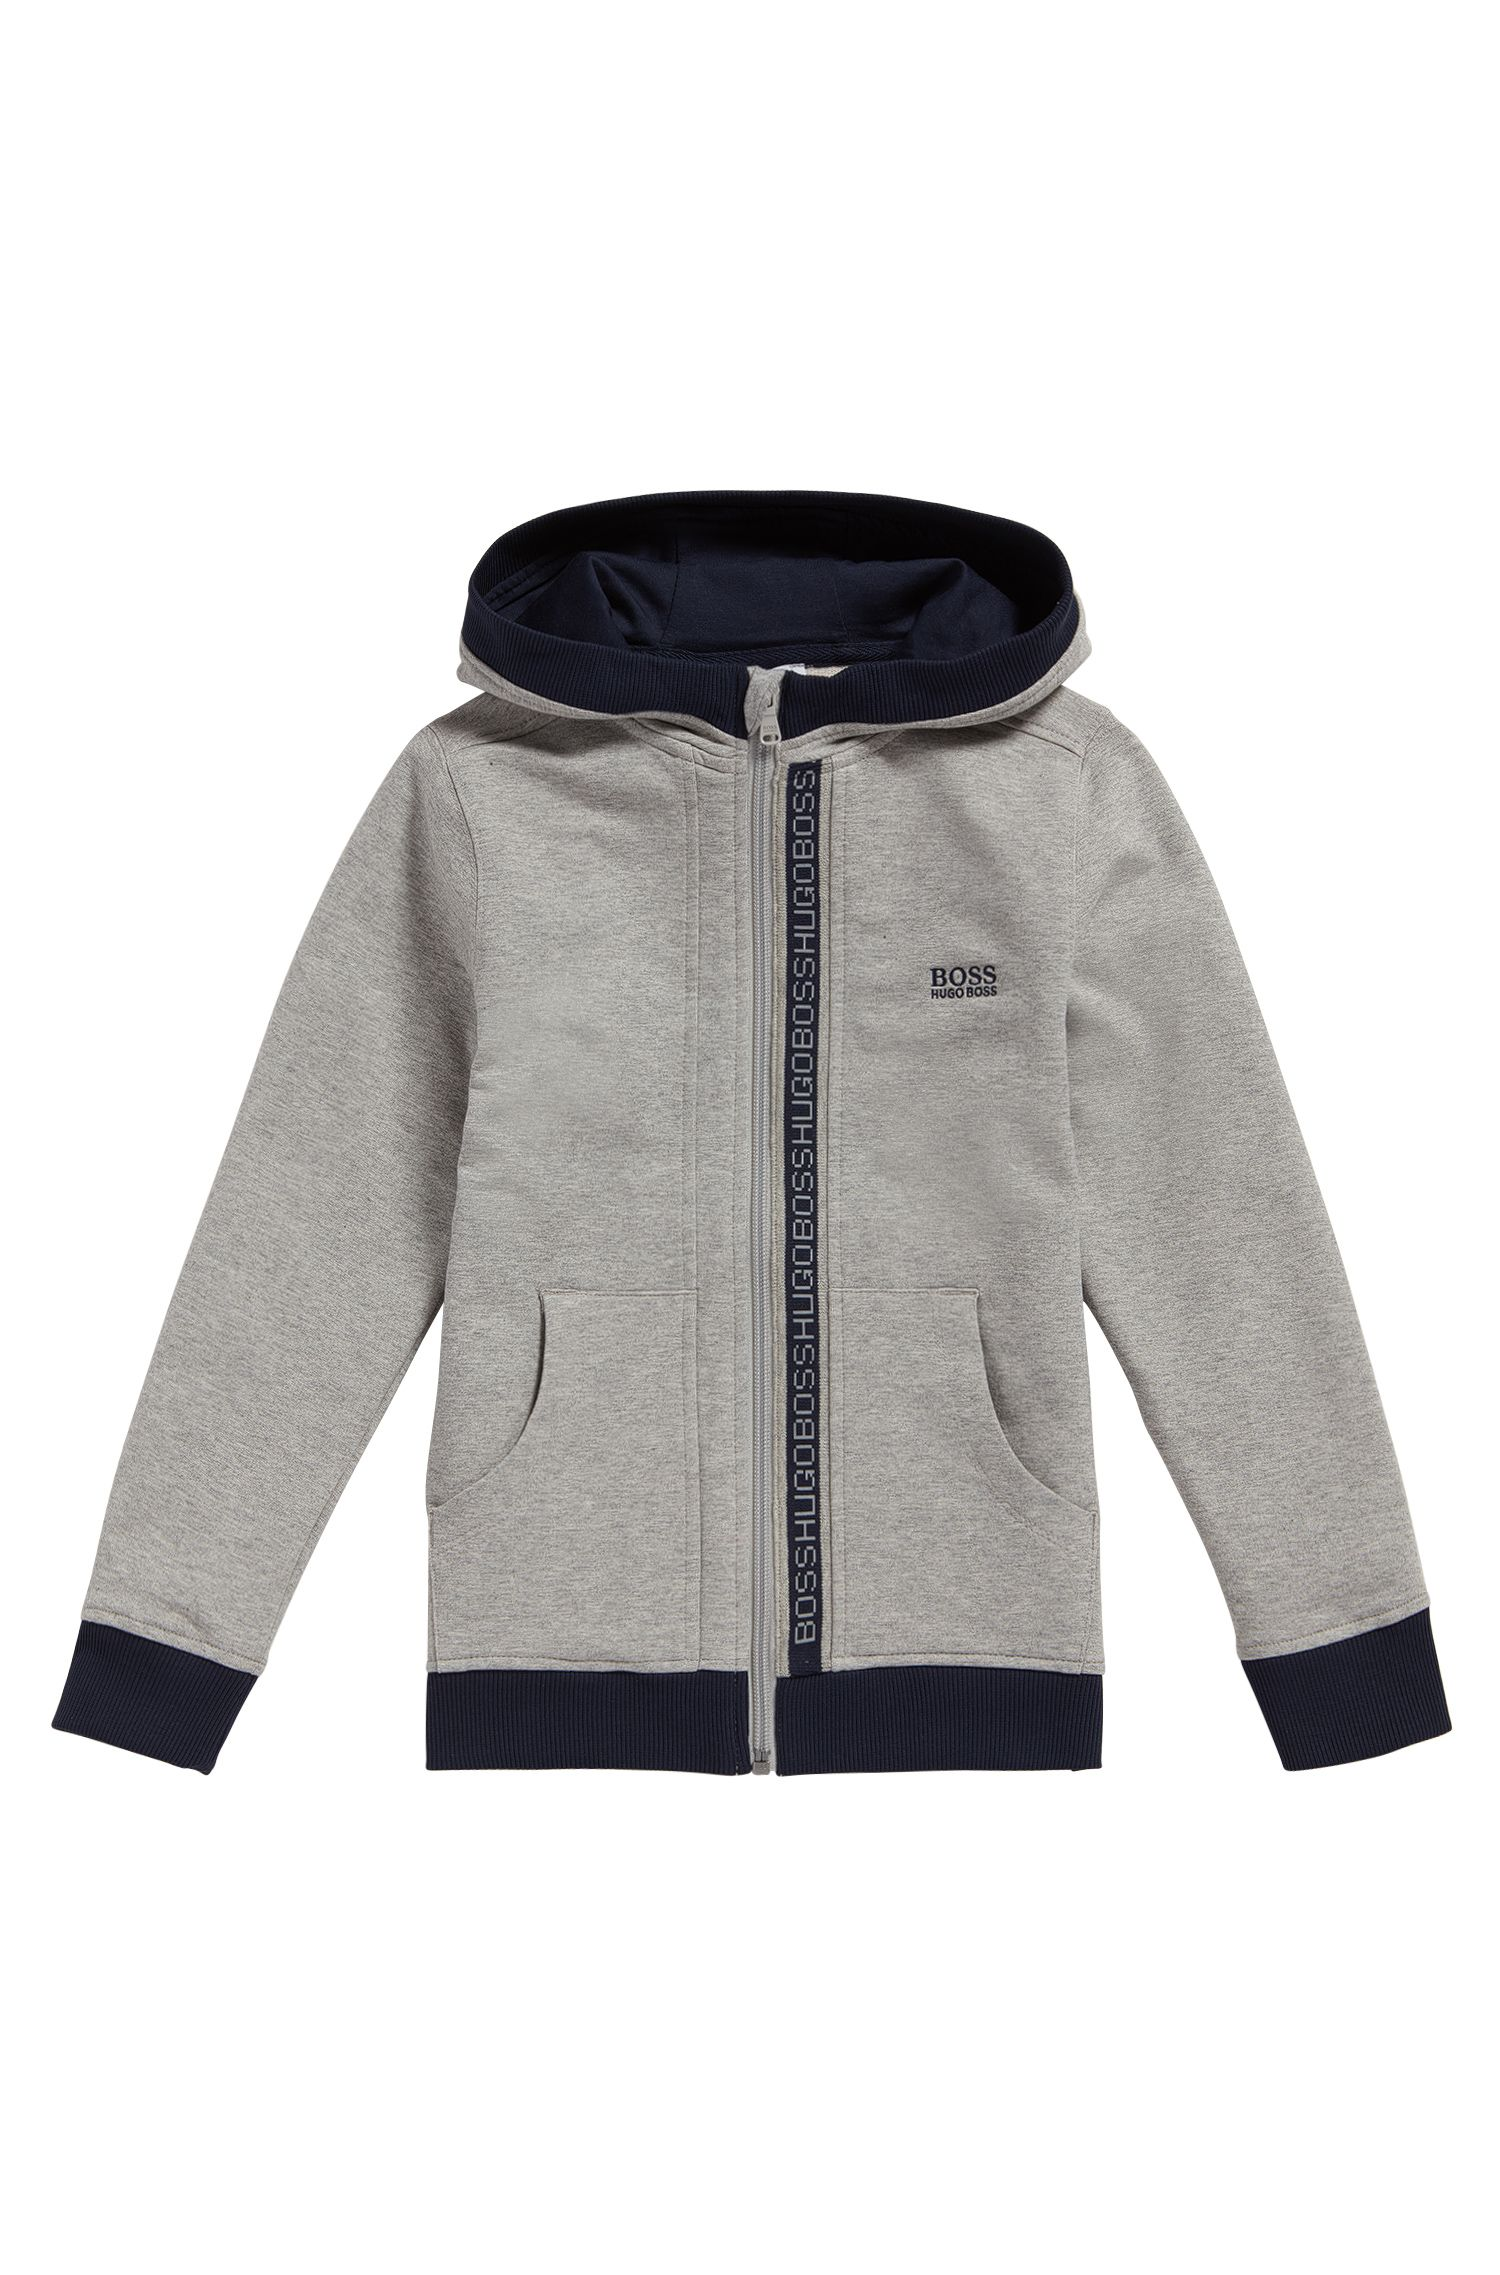 Kids' hooded sweatshirt jacket in stretch cotton: 'J25P02'